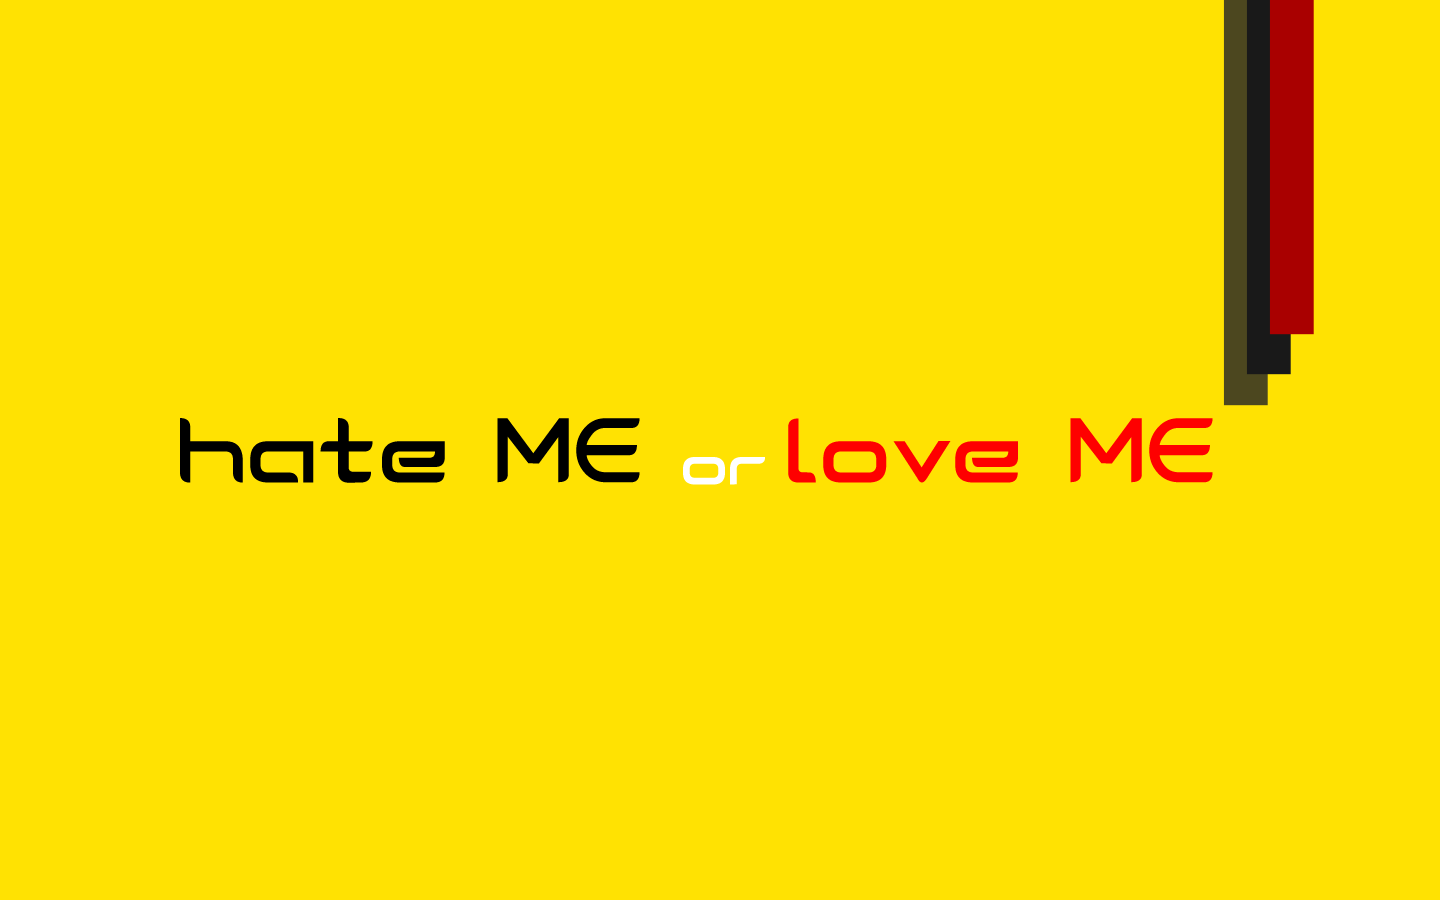 Hate Me or Love Me Wallpaper by raulpop8 on DeviantArt